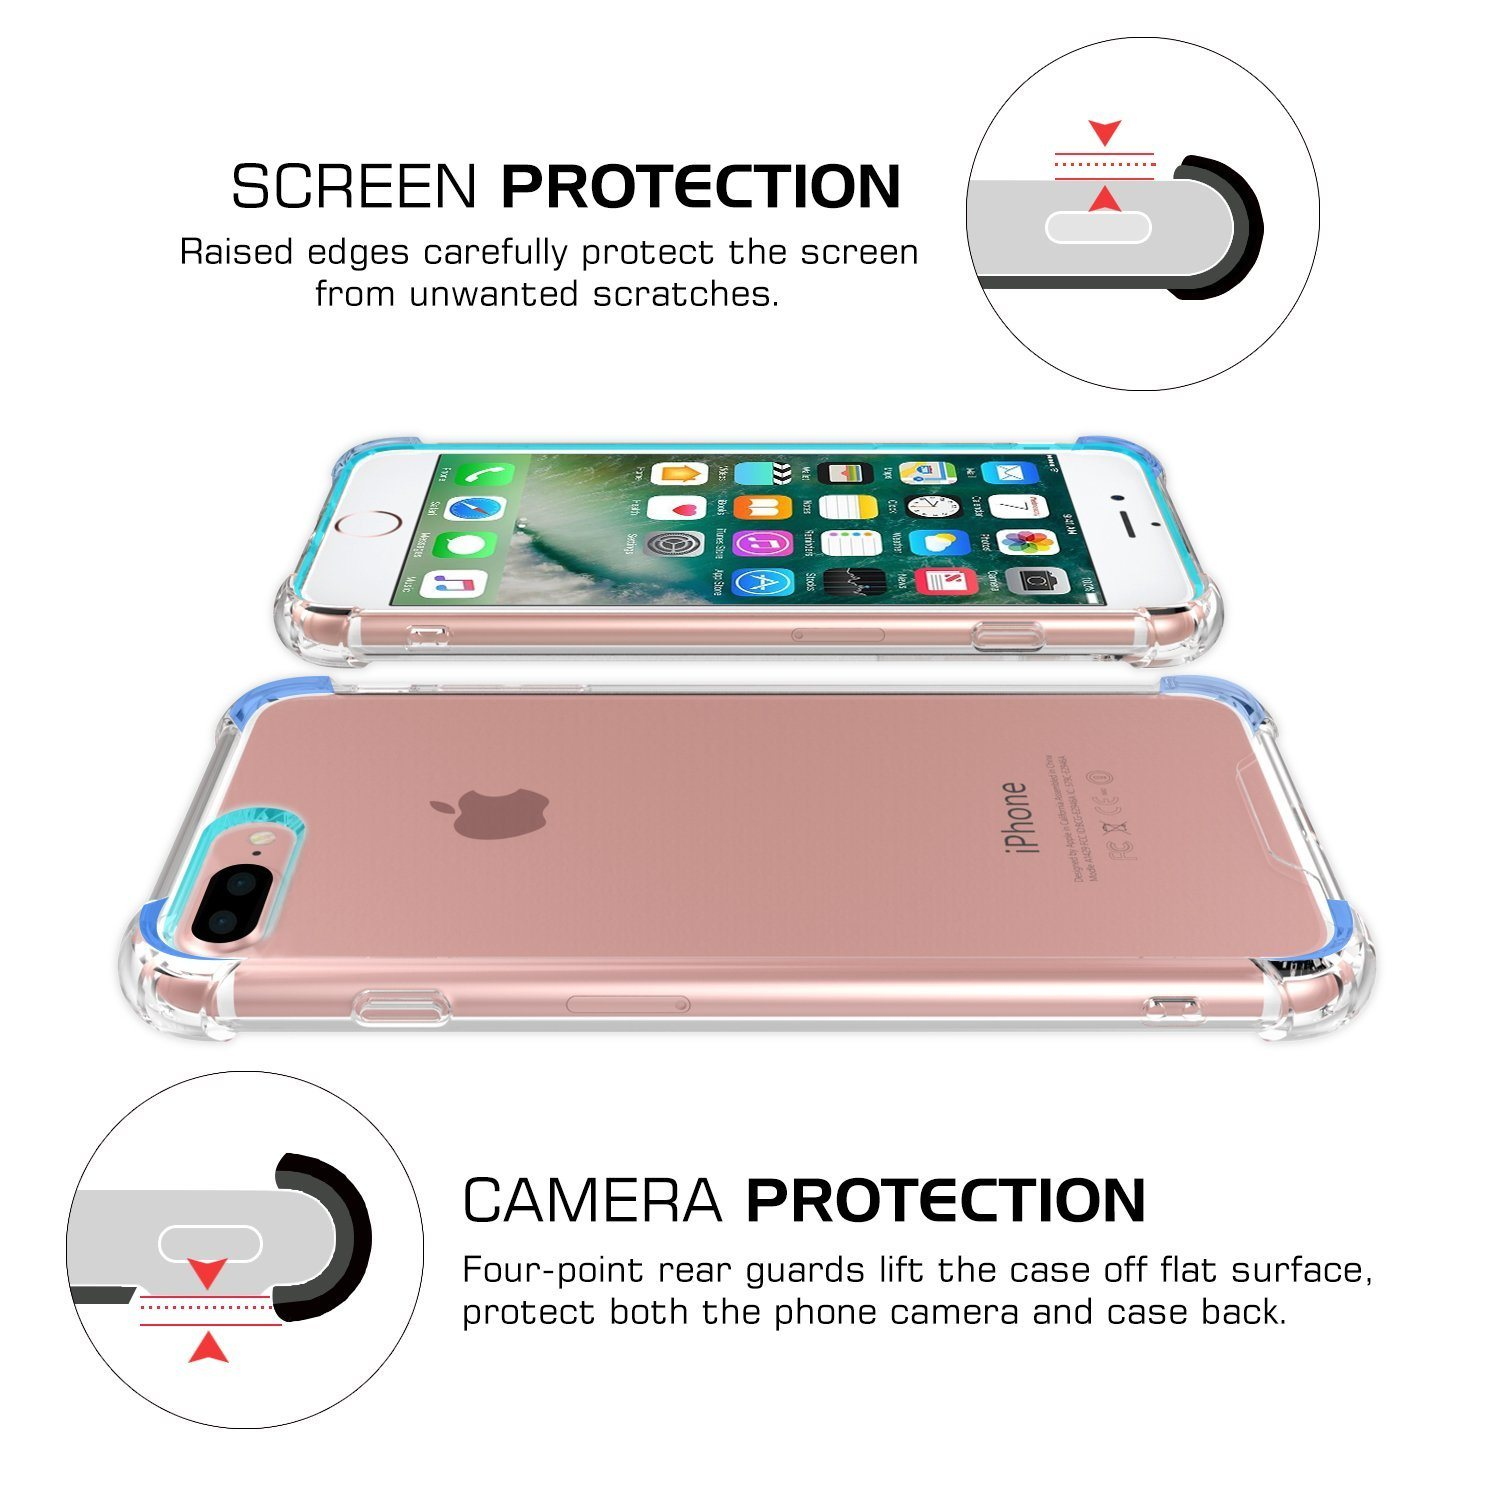 Crystal Clear Shock Absorption Technology Bumper Soft TPU Cover Case for iPhone 7 Plus 5.5-Inch